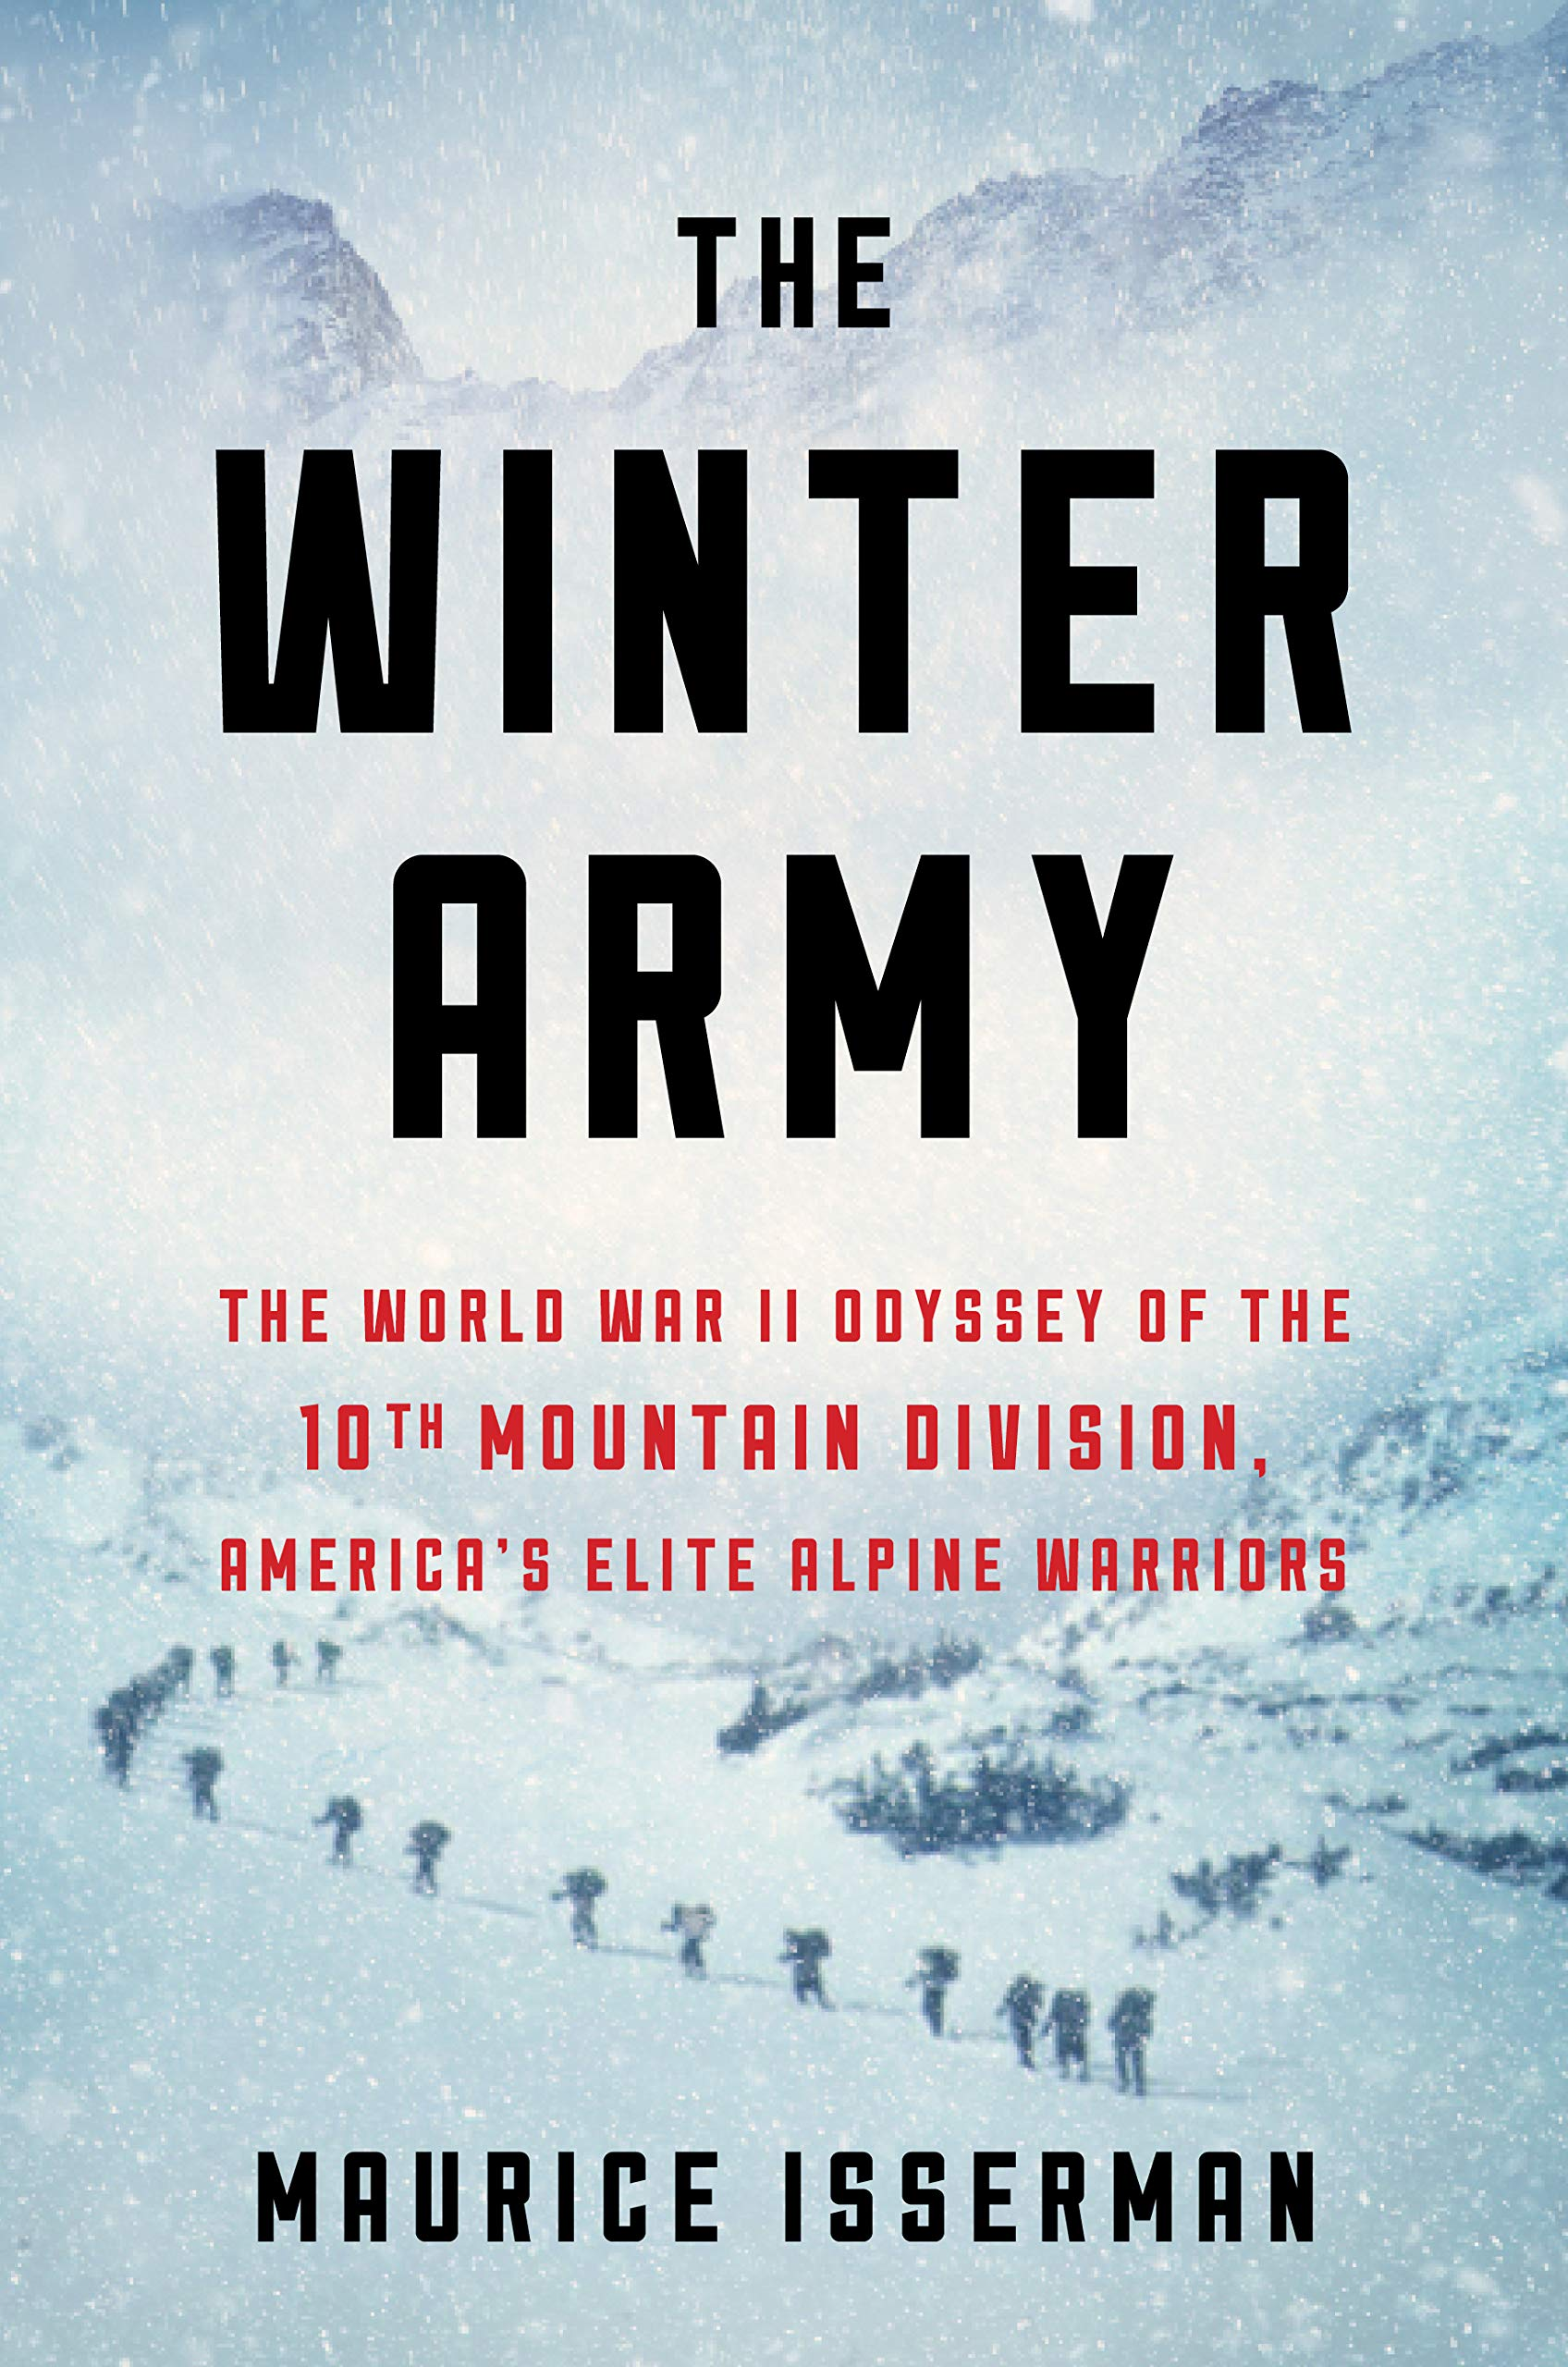 The Winter Army: The World War II Odyssey of the 10th Mountain Division, America's Elite Alpine Warriors by Houghton Mifflin Harcourt